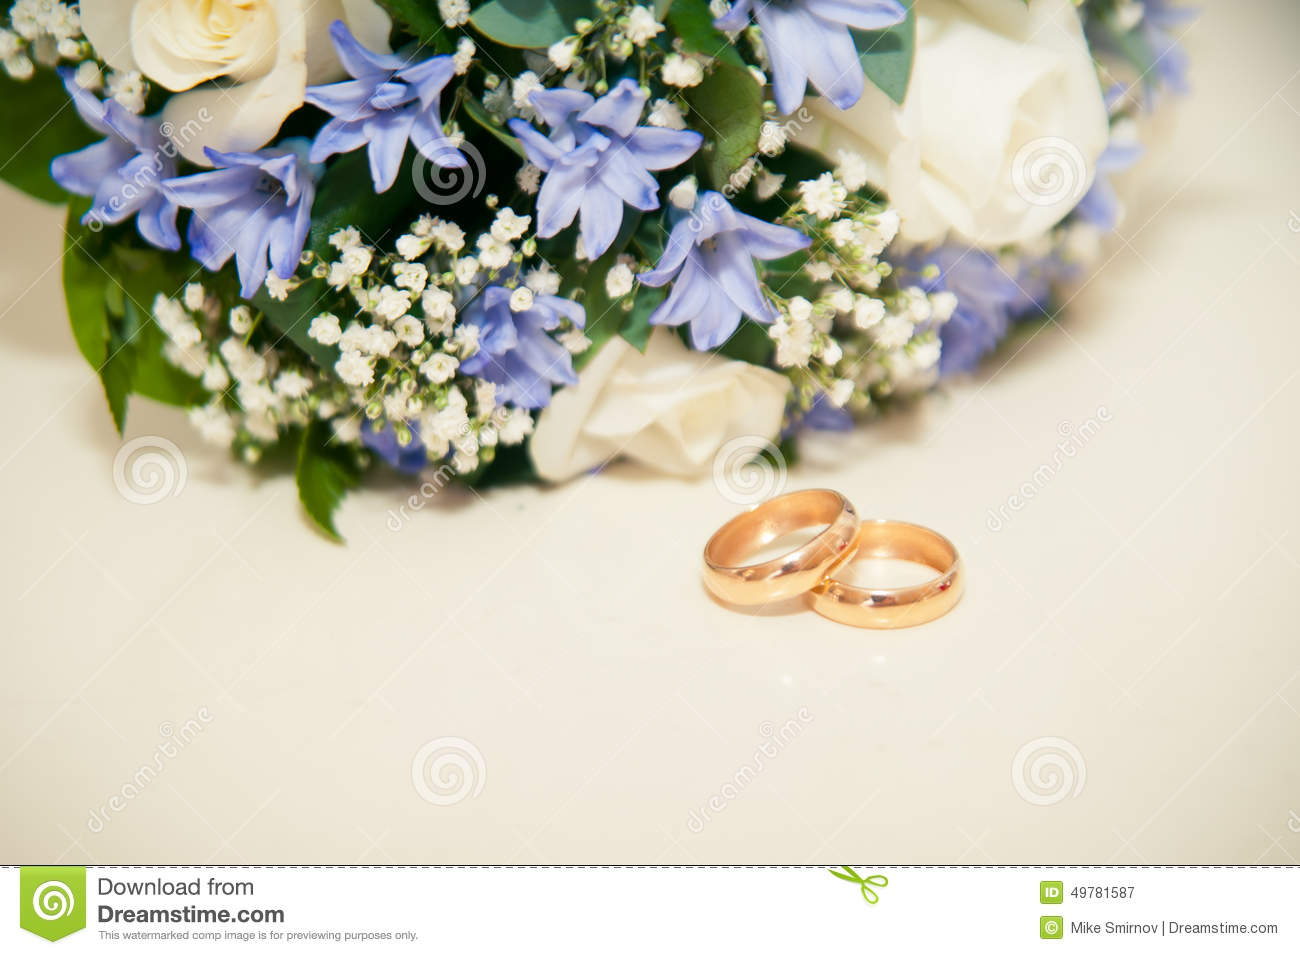 rings flower day wedding special petals iphone love flowers garden plus wallpaper beautiful roses bouquet desktop